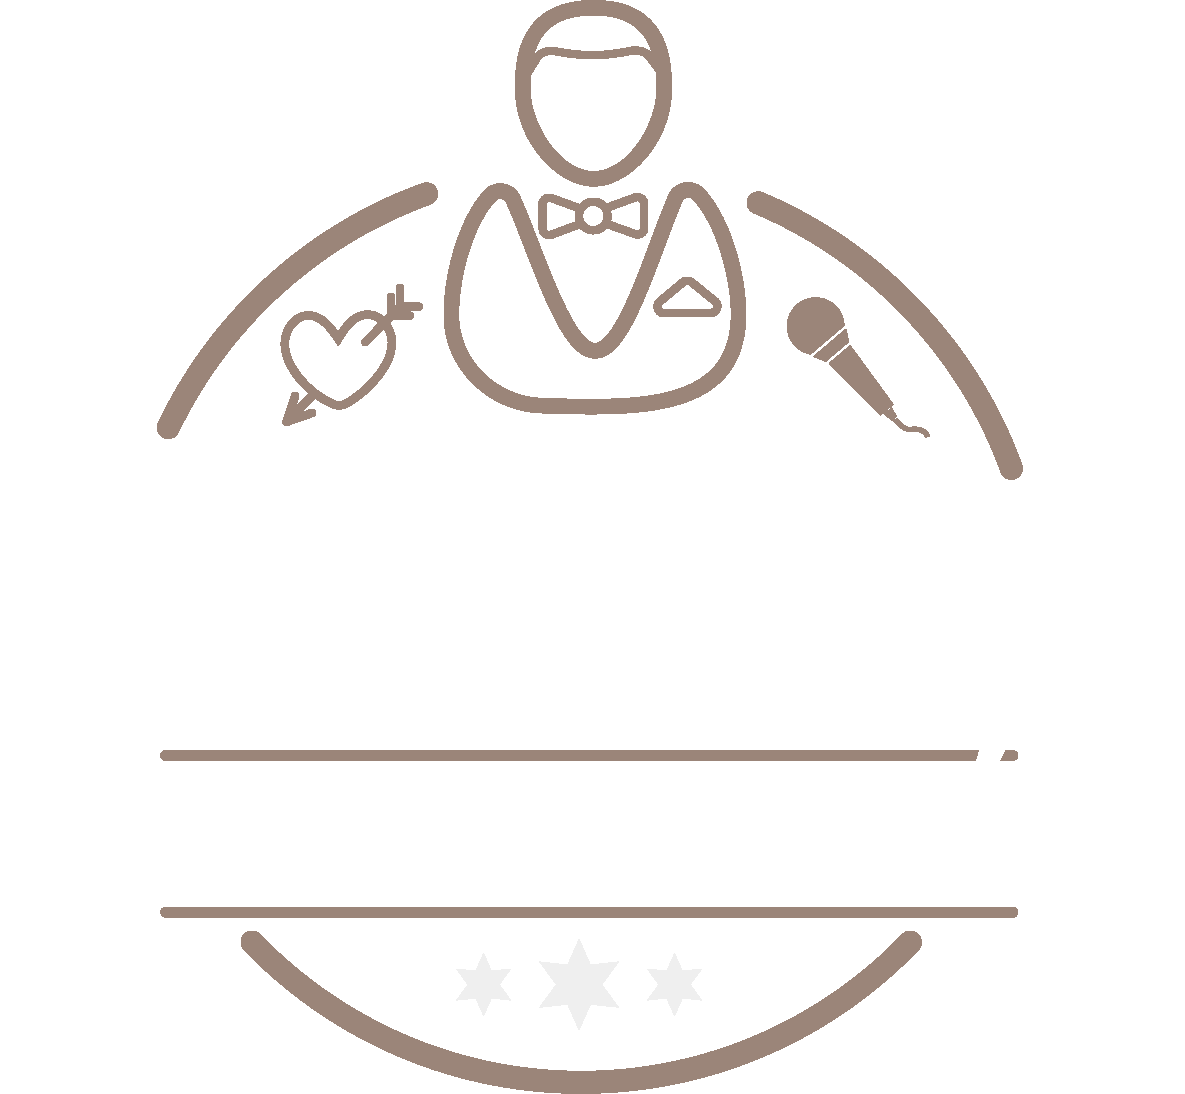 A Stand-up Celebrant - Melbourne Weddings